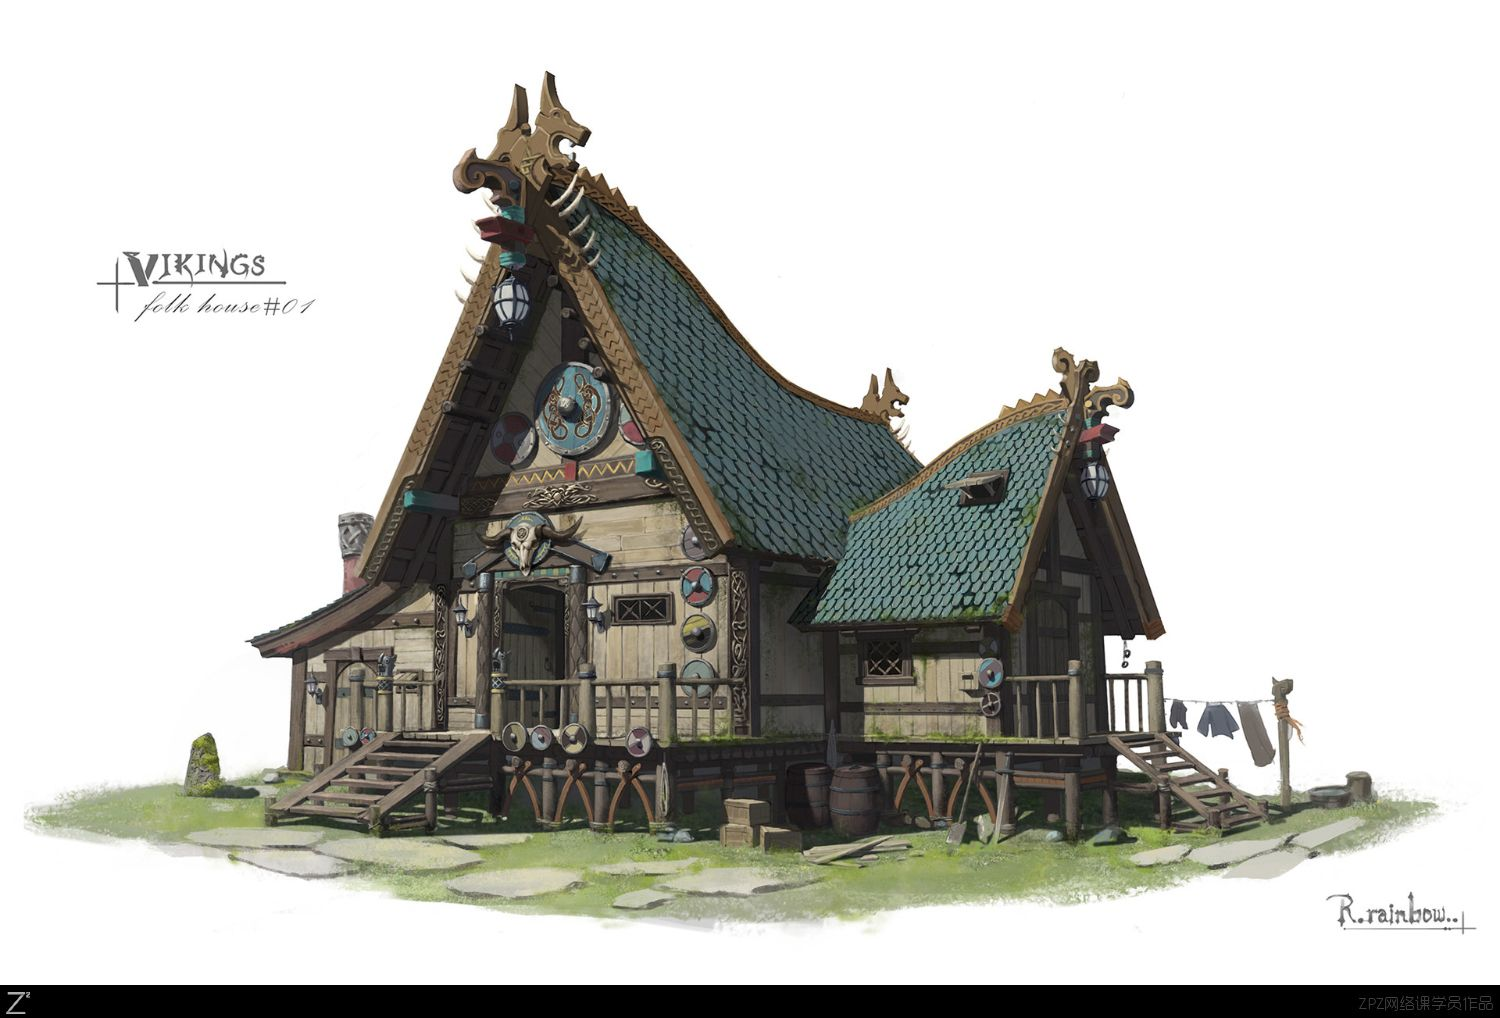 Pin By Drstrelok On Nordic Viking House Medieval Houses Scandinavian Architecture